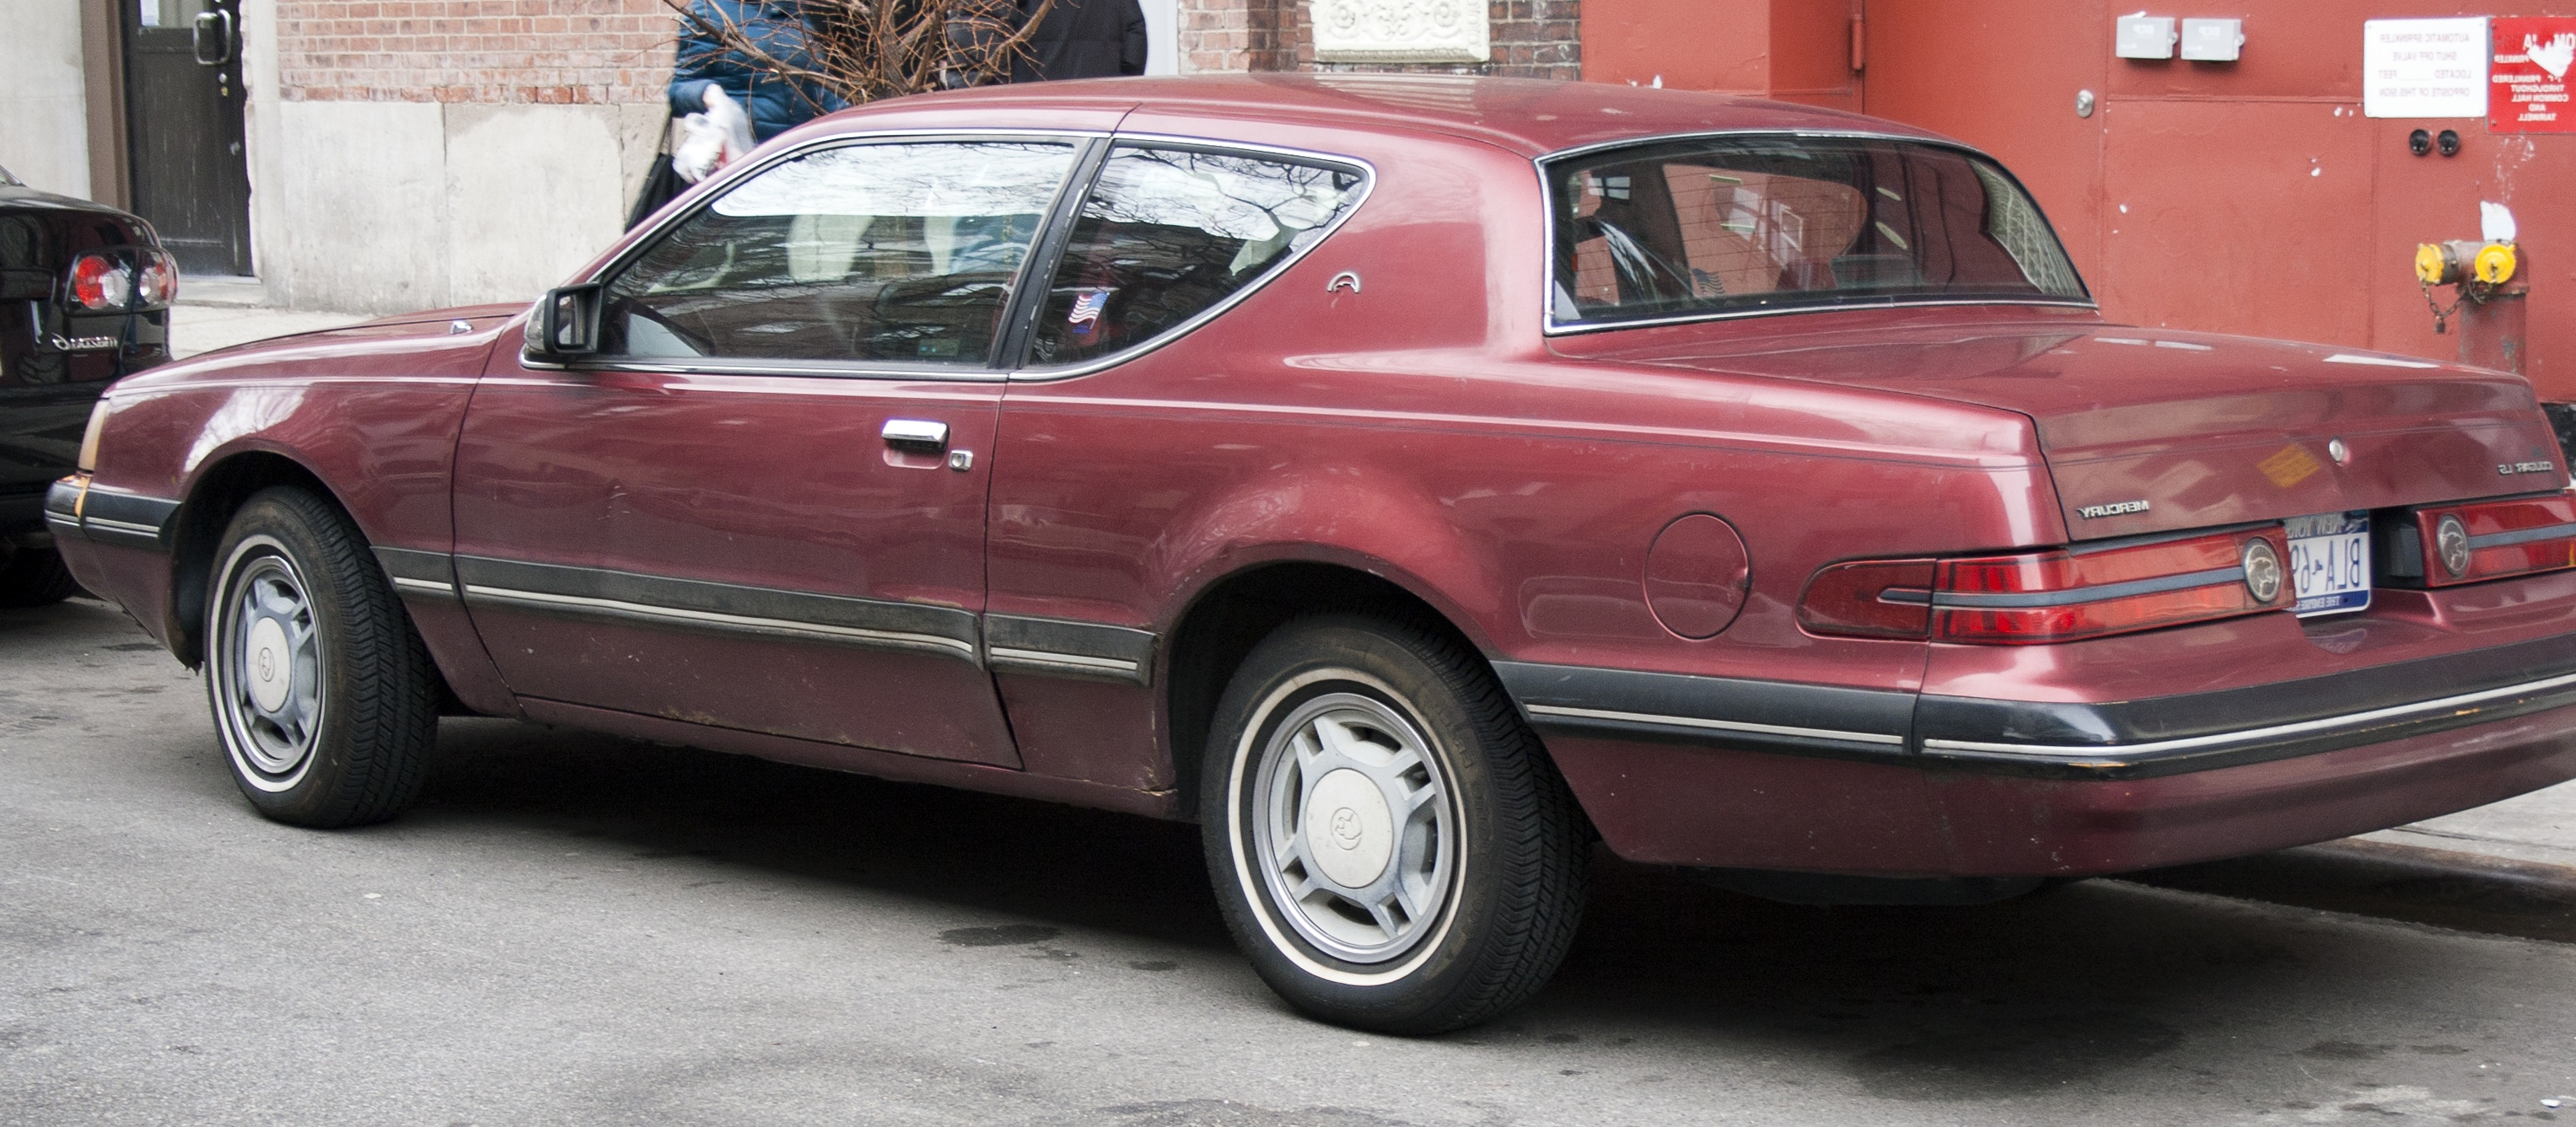 Description 1988 Mercury Cougar.jpg